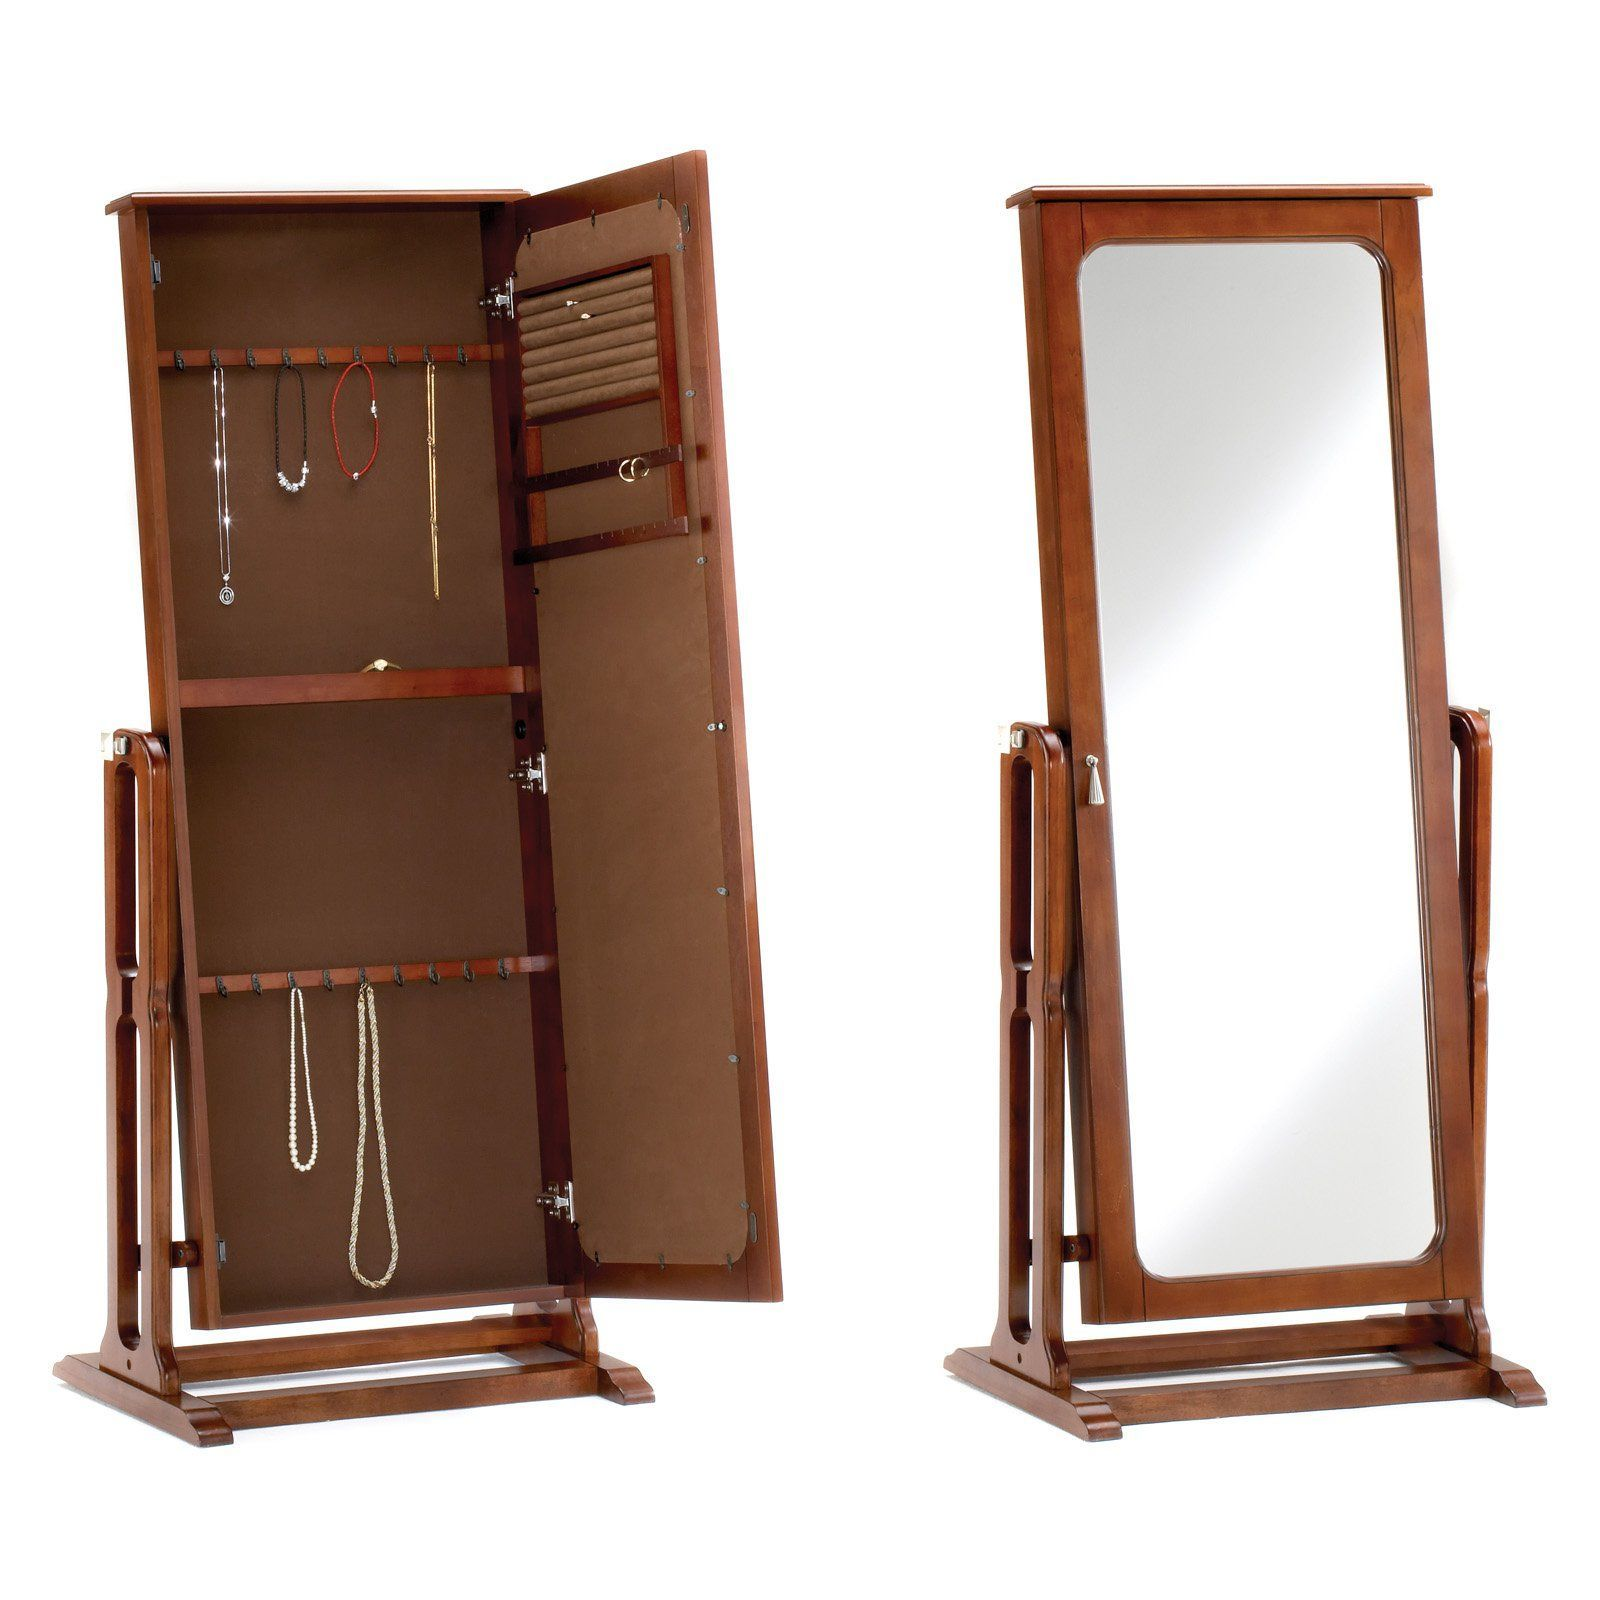 Bernards Cherry Jewelry Armoire with Mirror 7003 Paracord